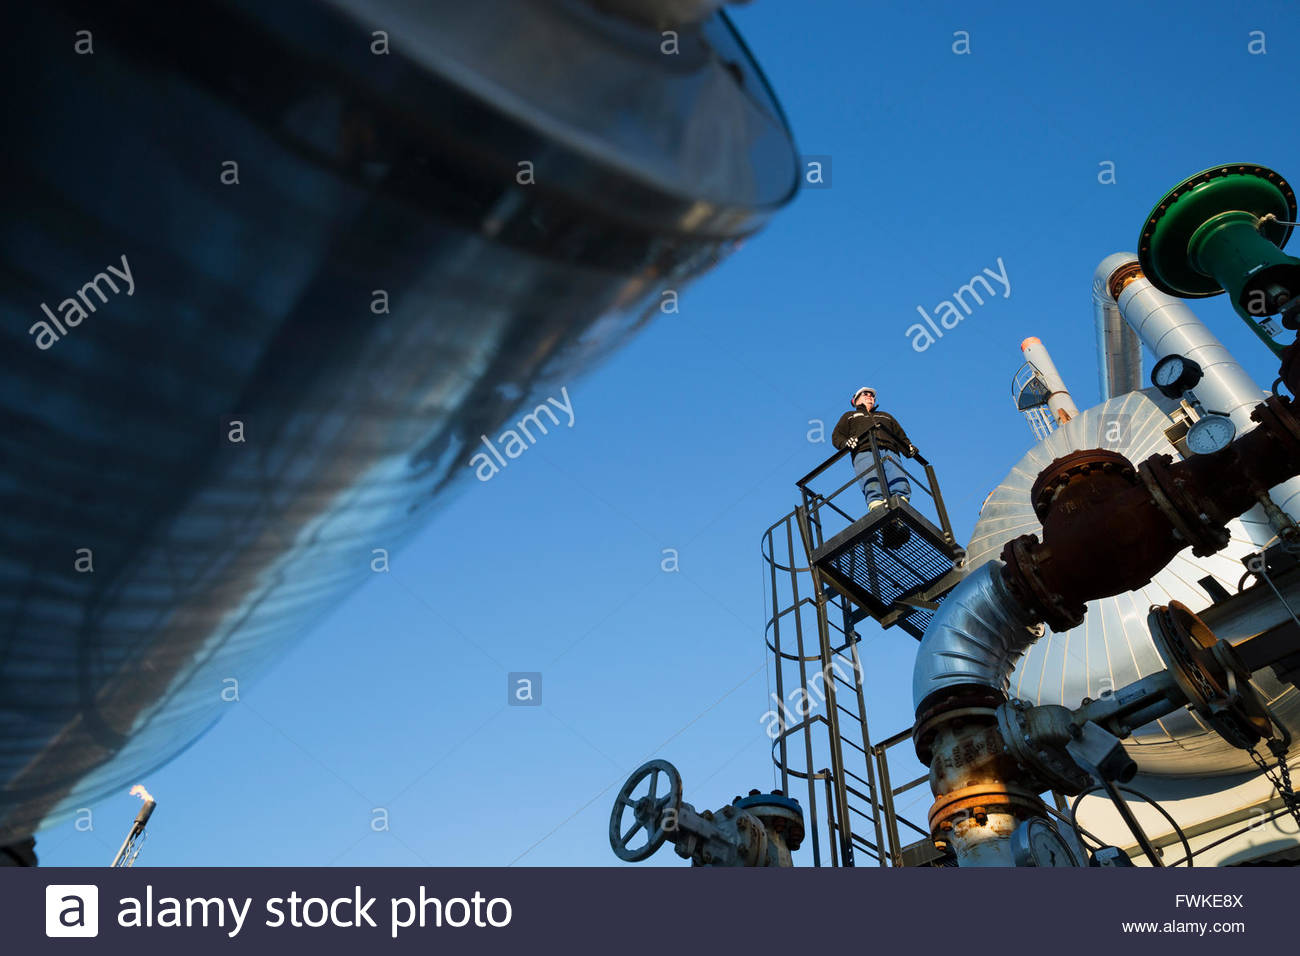 Male engineer standing on platform above gas plant - Stock Image